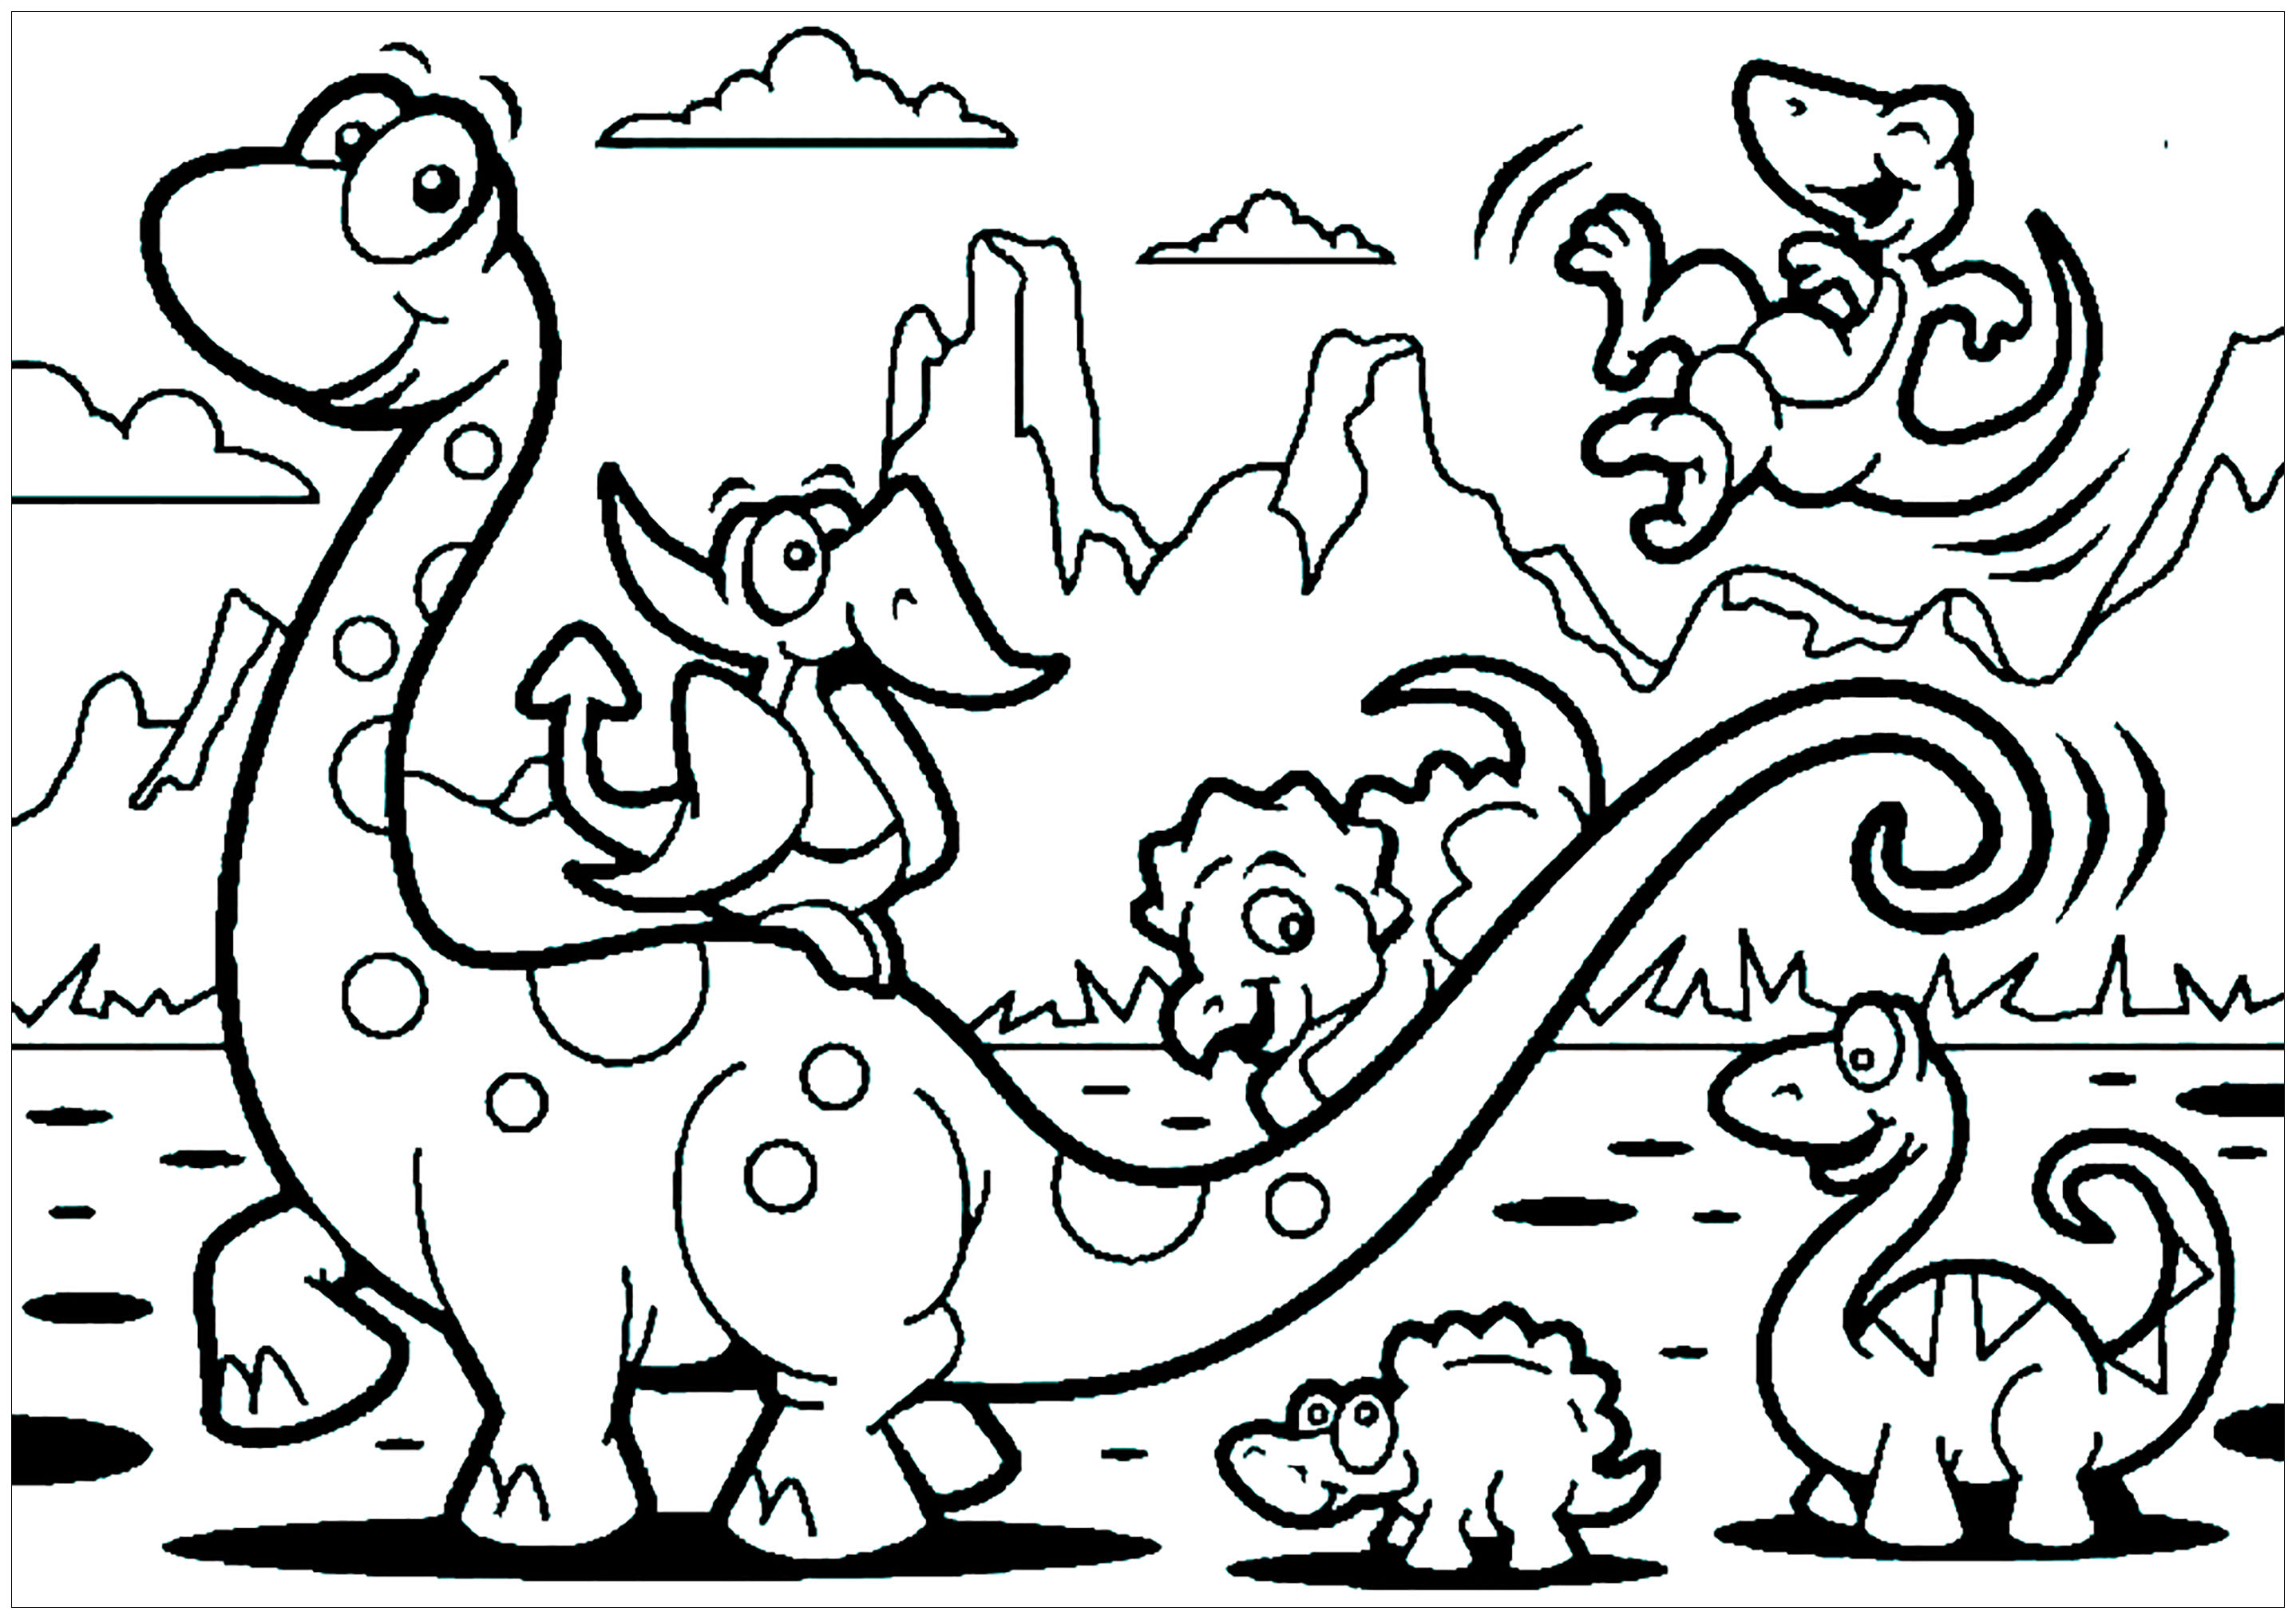 Dinosaurs For Kids Brachiosaur Family Dinosaurs Kids Coloring Pages